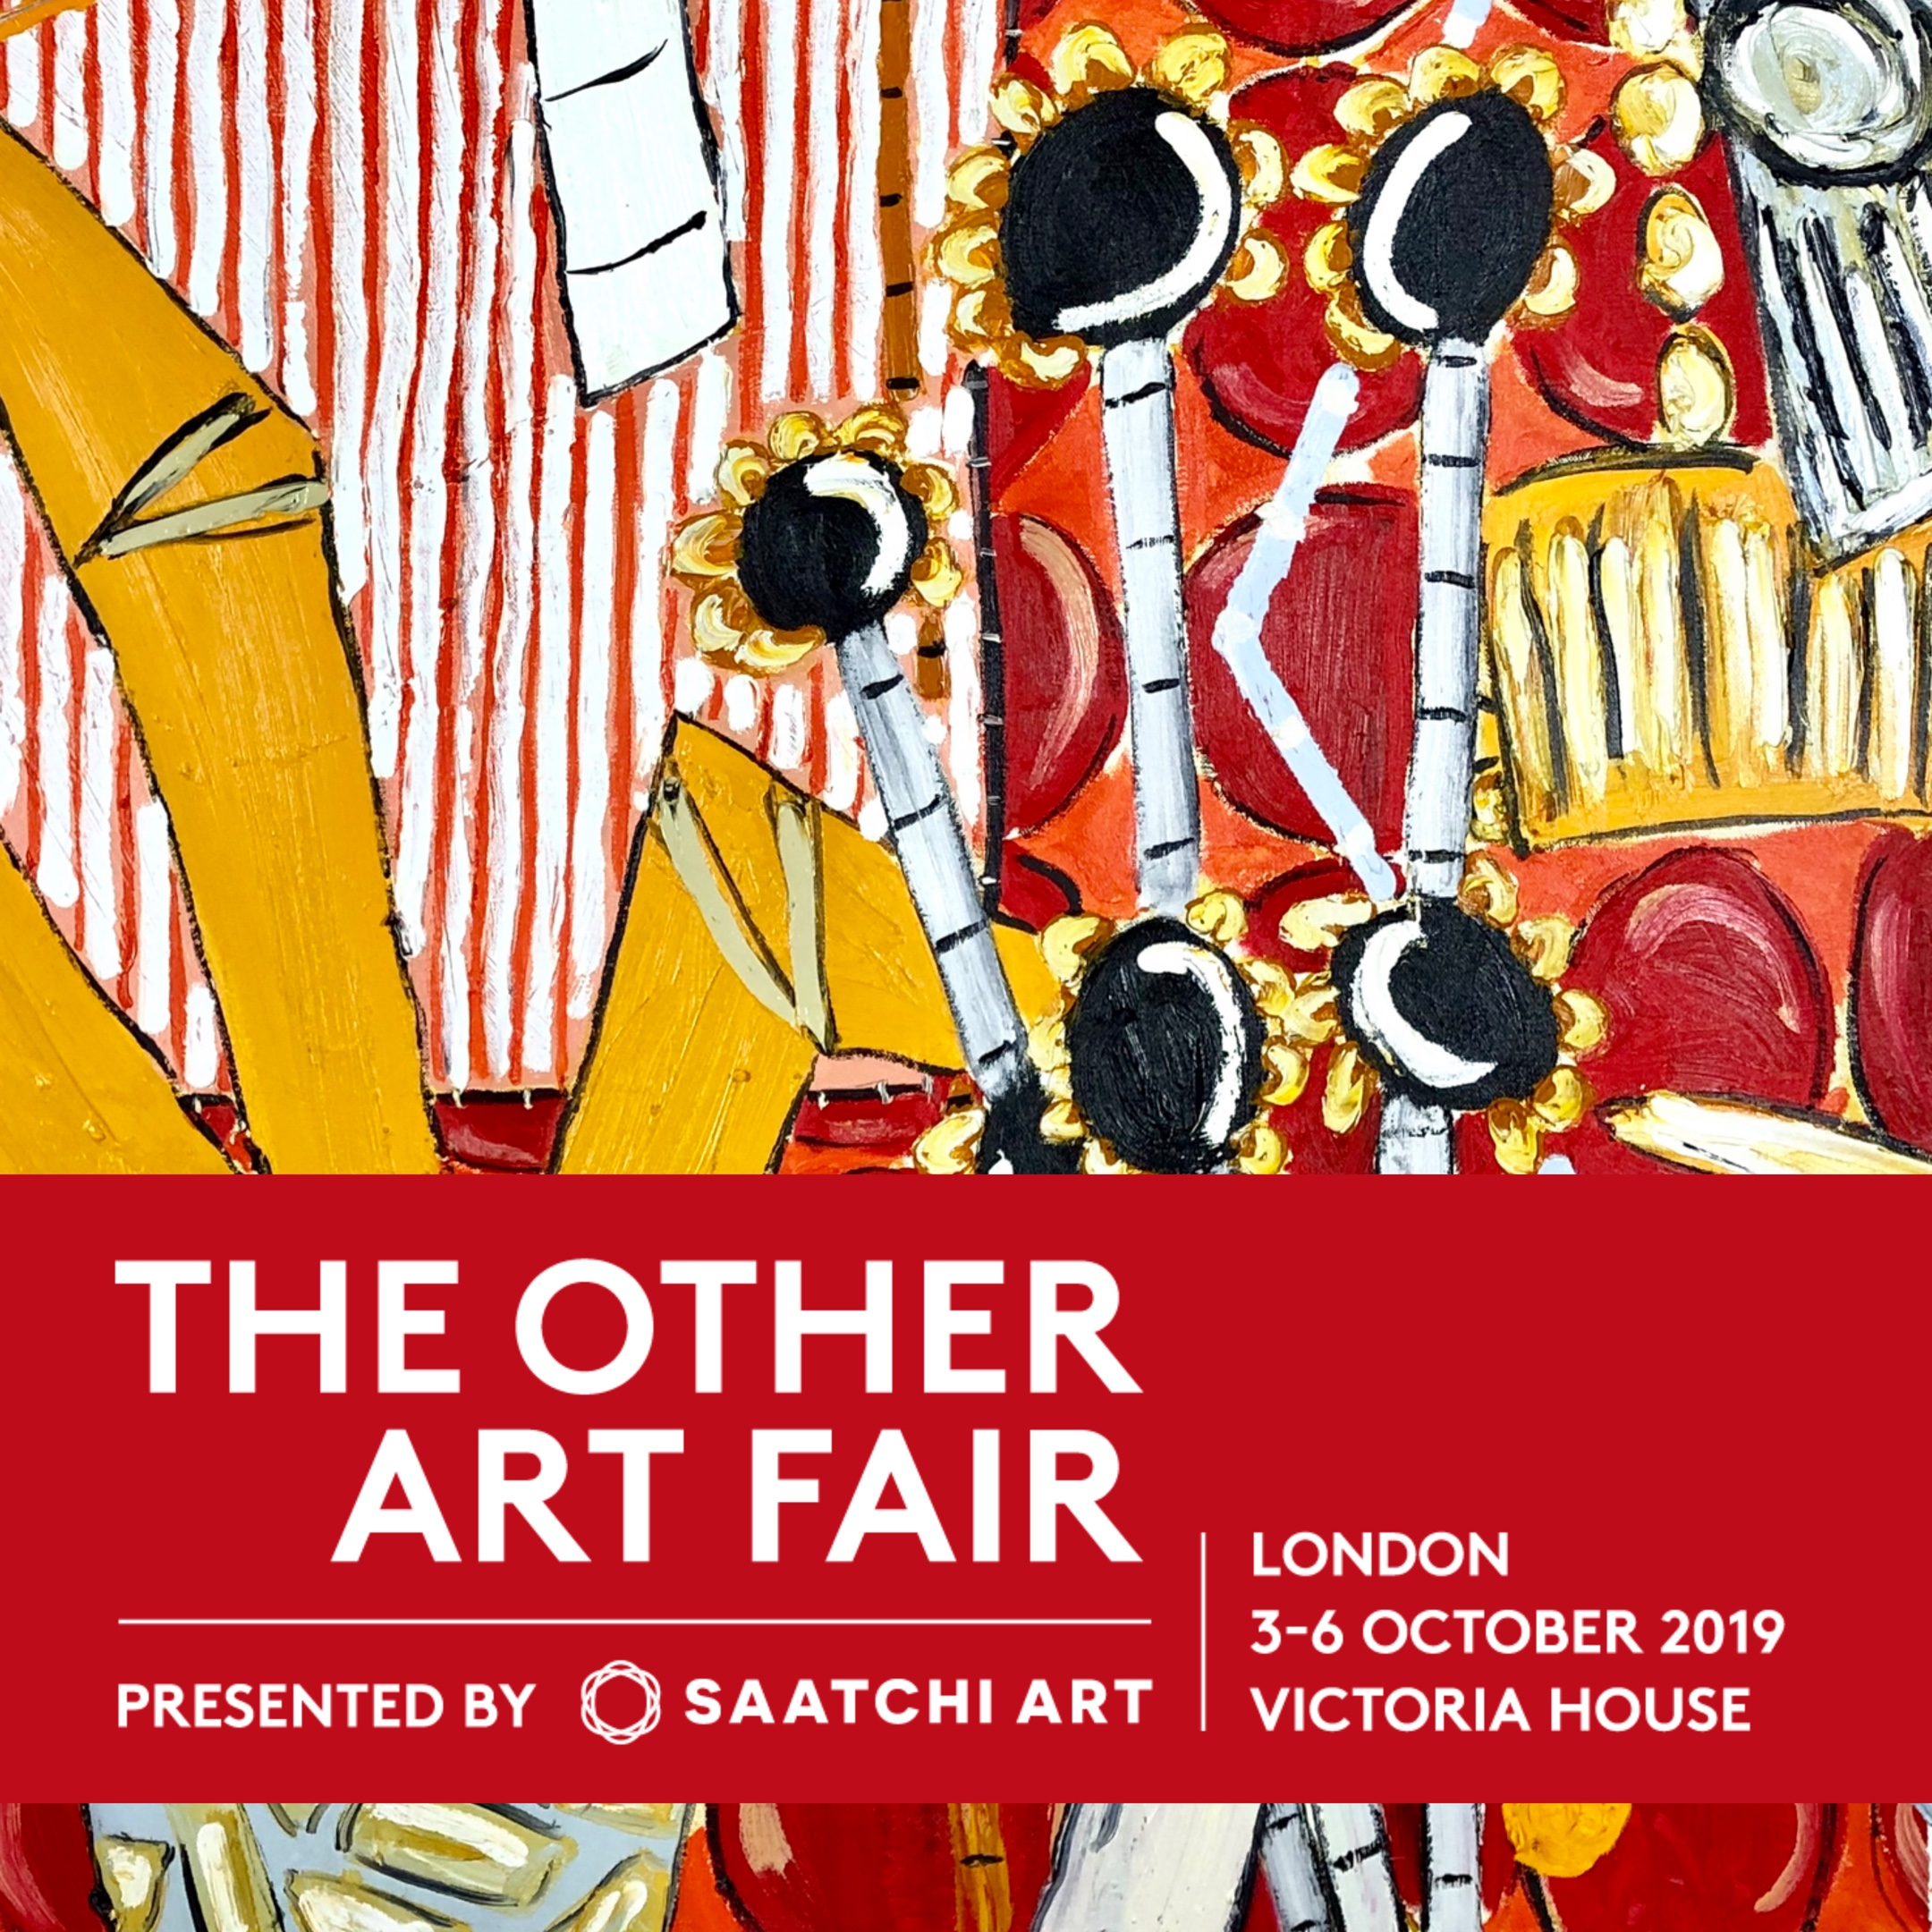 The Other Art Fair, London - In October I'll be heading to Victoria House, London. If you would like to attend use code: 'Cumming' for complimentary tickets.